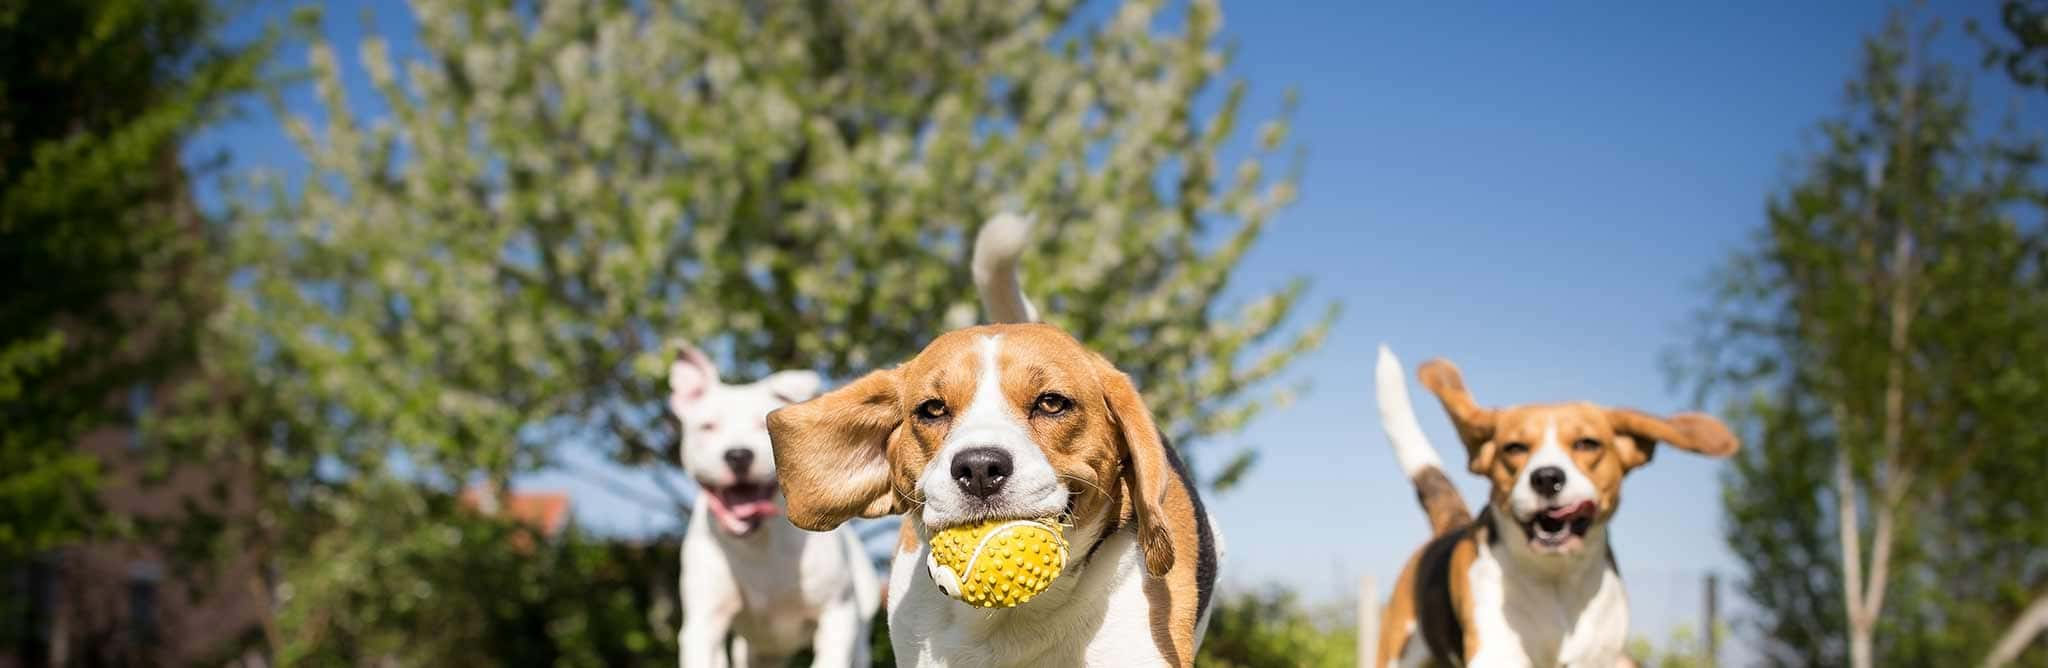 Three dogs playing with a ball in the park